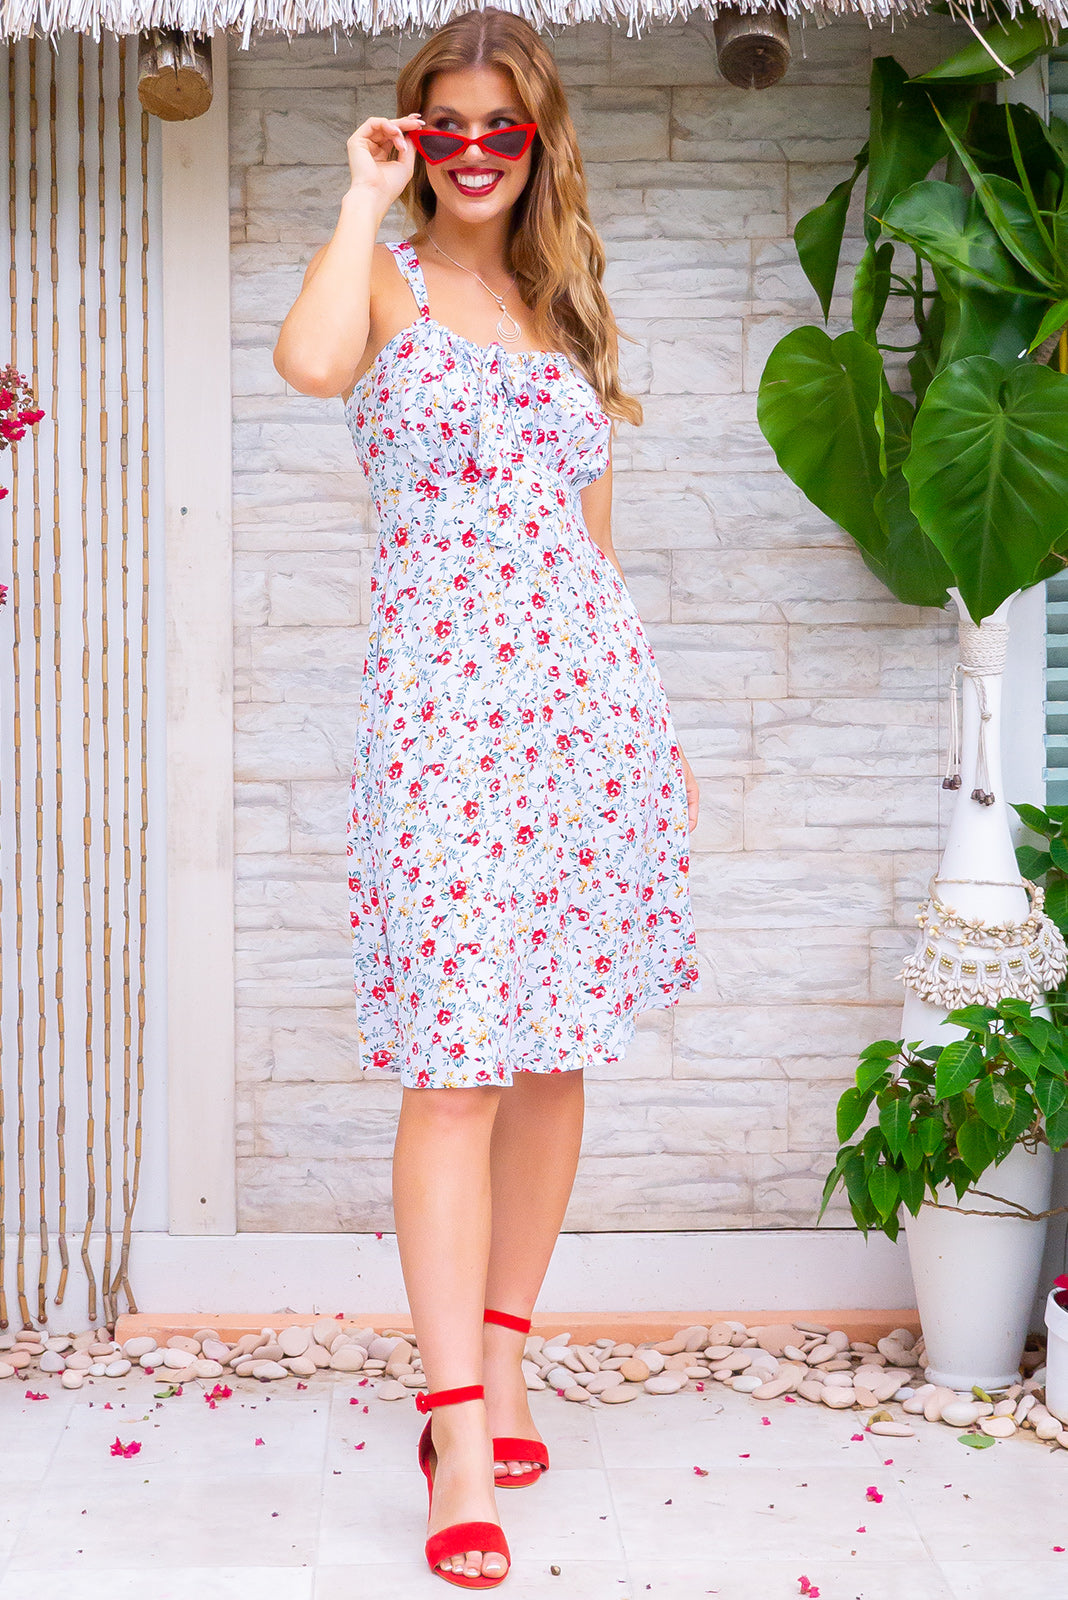 Jay Bay Roses and Stars Mini Dress, bohemian summer style, 100% viscose, elasticated shirred back, sleeveless, keyhole adjustable drawstring design on bust, side pockets, white base with small red, gold and forest green floral print.